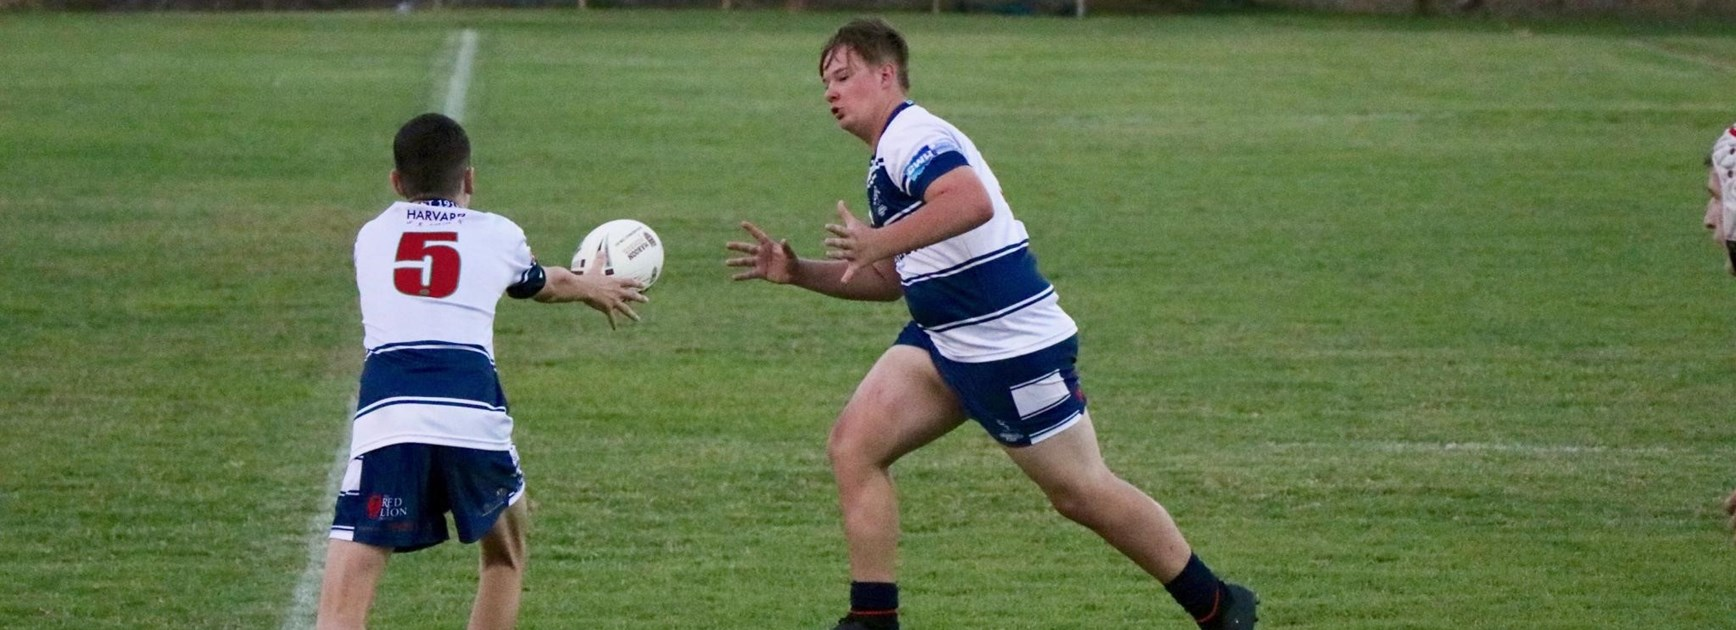 Battle of the Capricorn Coast ends in a draw